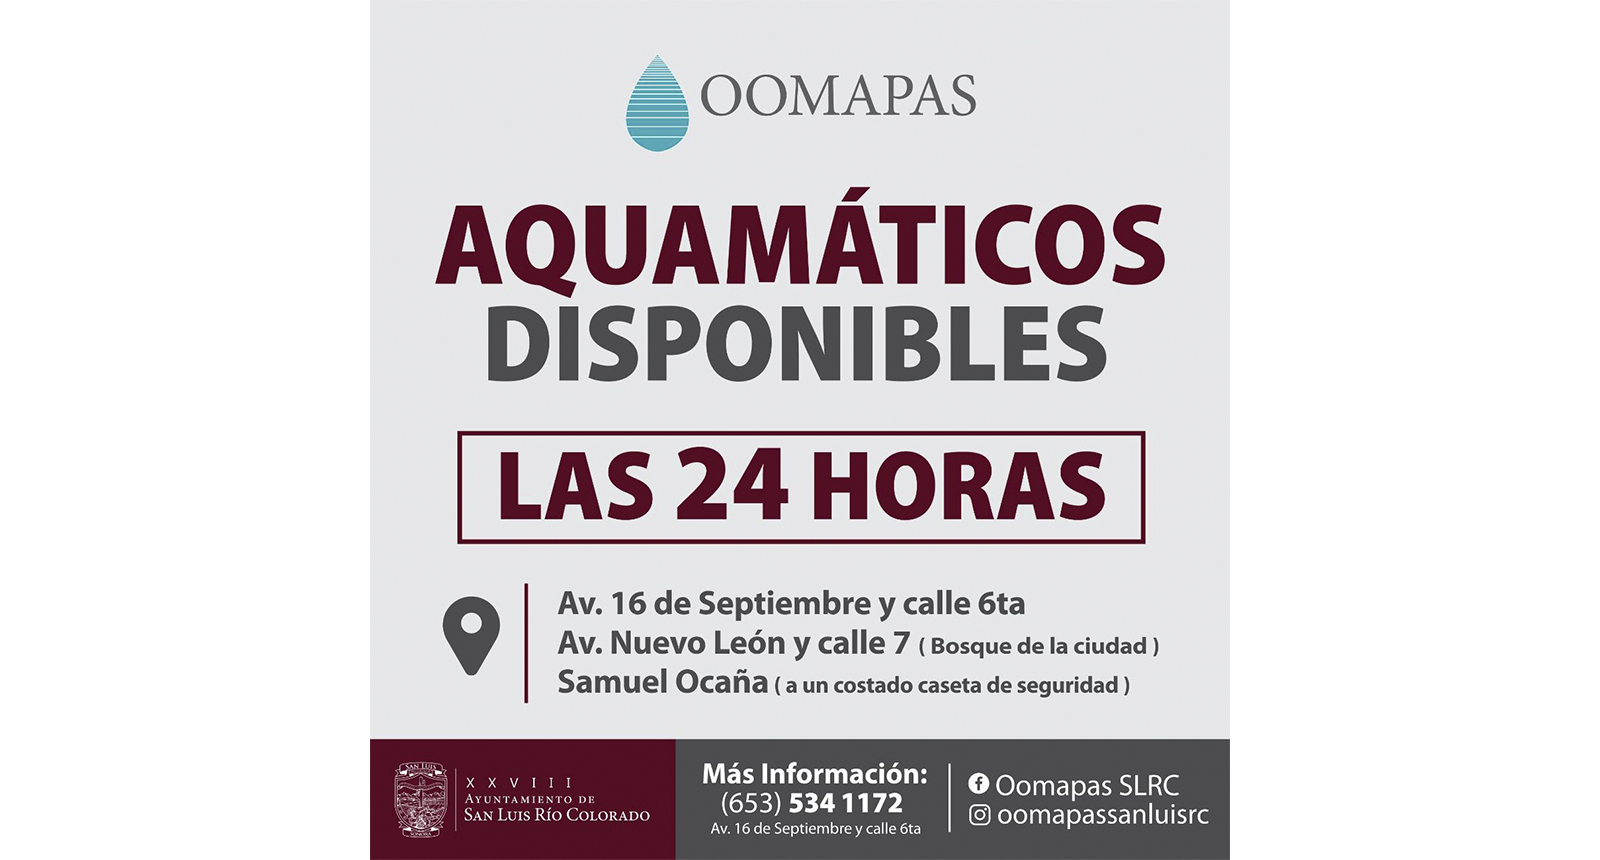 Aquamaticos Disponibles